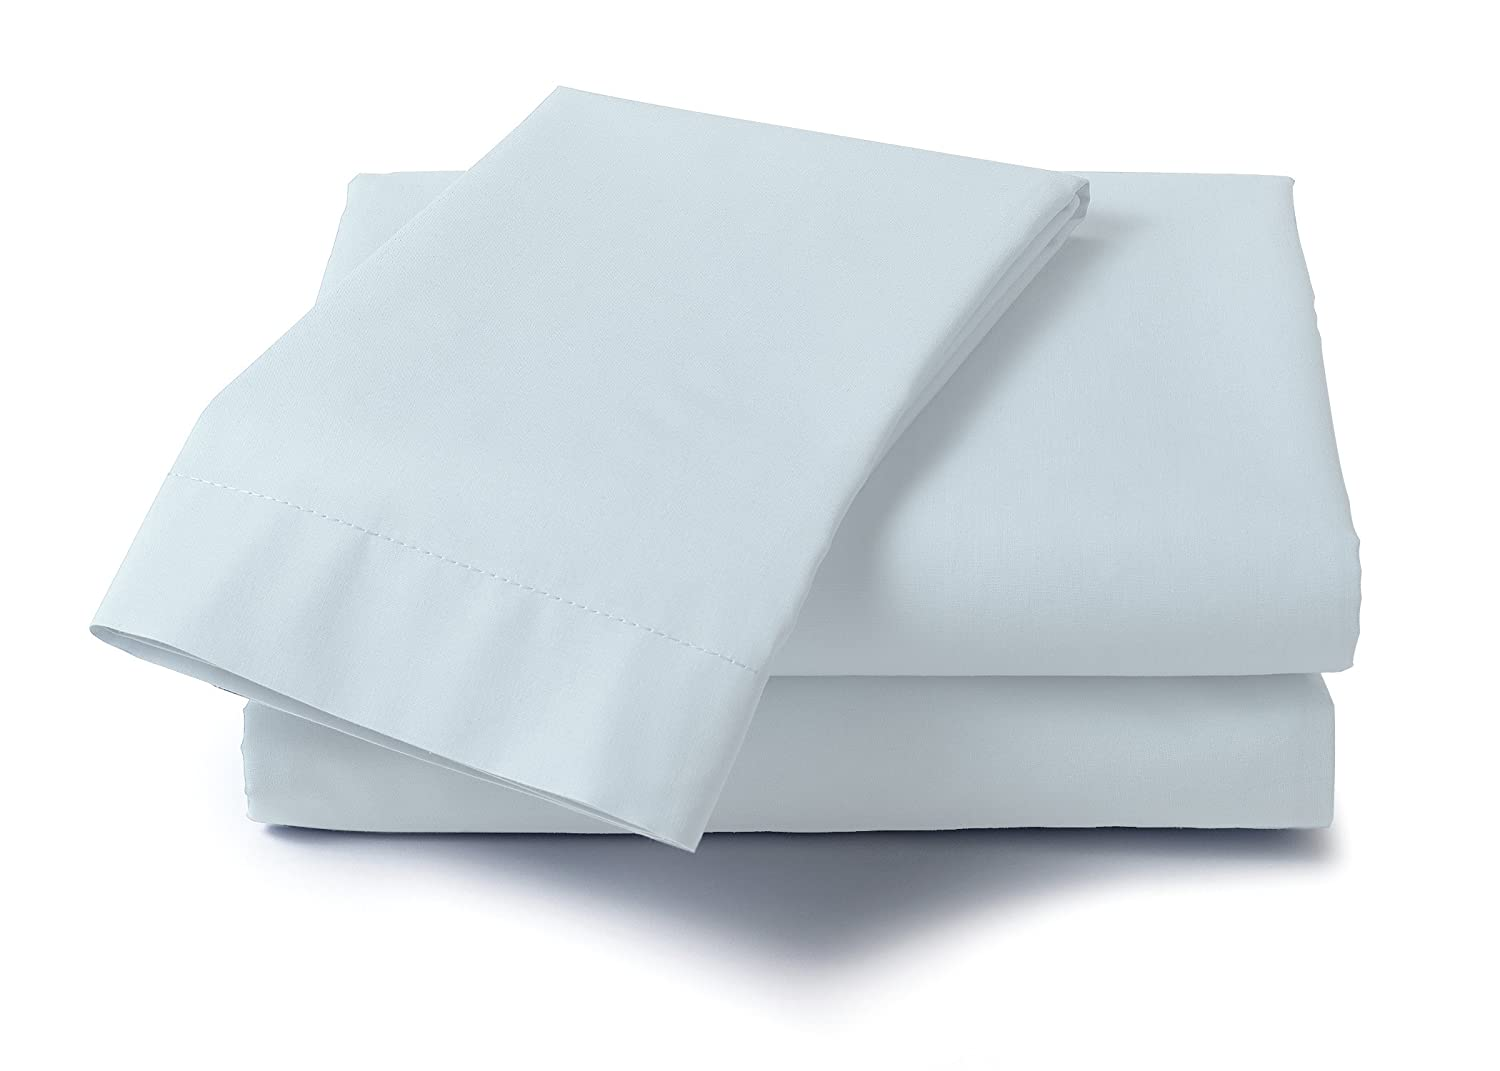 fitted sheets for memory foam mattress Amazon.com: Dreamz 400 Thread Count Specialty Size Sheet Set for  fitted sheets for memory foam mattress